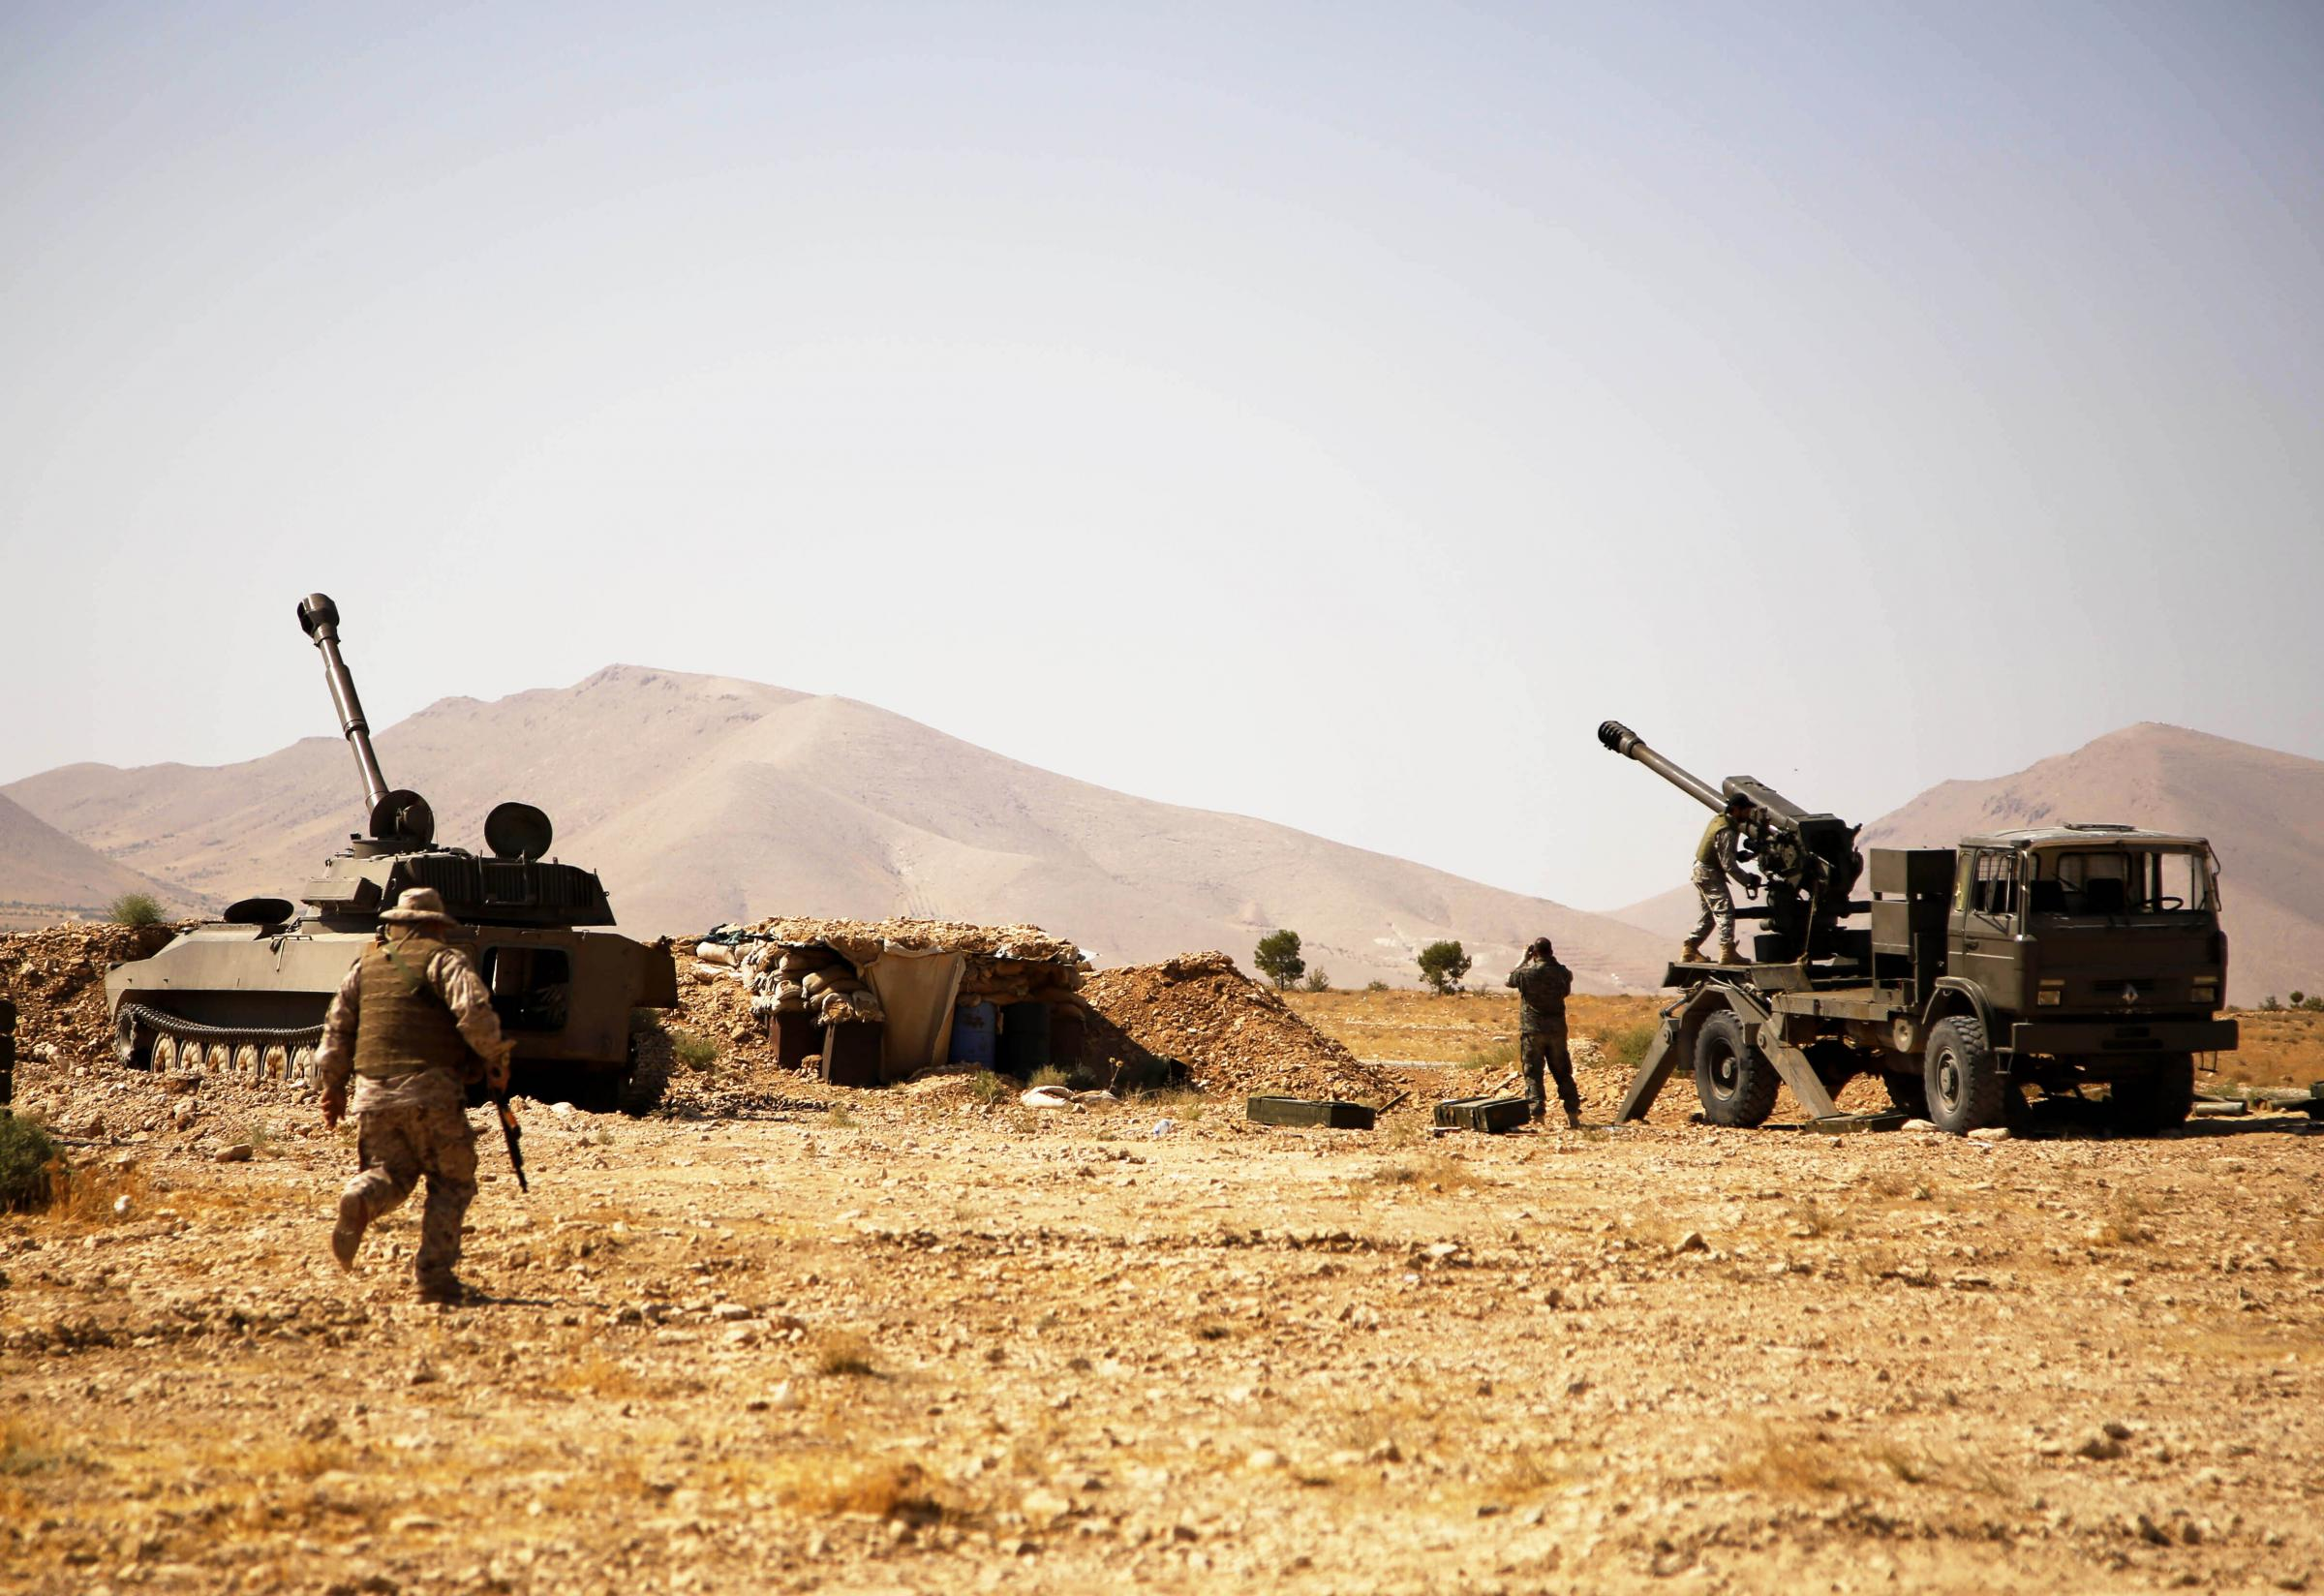 (170823) -- QARA(SYRIA), Aug.23 (Xinhua) -- Fighters of the Lebanese Hezbollah group prepare to fire artillery shells on the positions of the Islamic State (IS) militants in Qara town, western Qalamoun region, Syria, on Aug. 23, 2017. The Lebanese Hezbollah group and Syrian army are dealing heavy blow to the Islamic State (IS) group in Syria's Qalamoun region near Lebanon to end the presence of the terror-designated group in the border region between both countries. (Xinhua/Ammar Safarjalani)